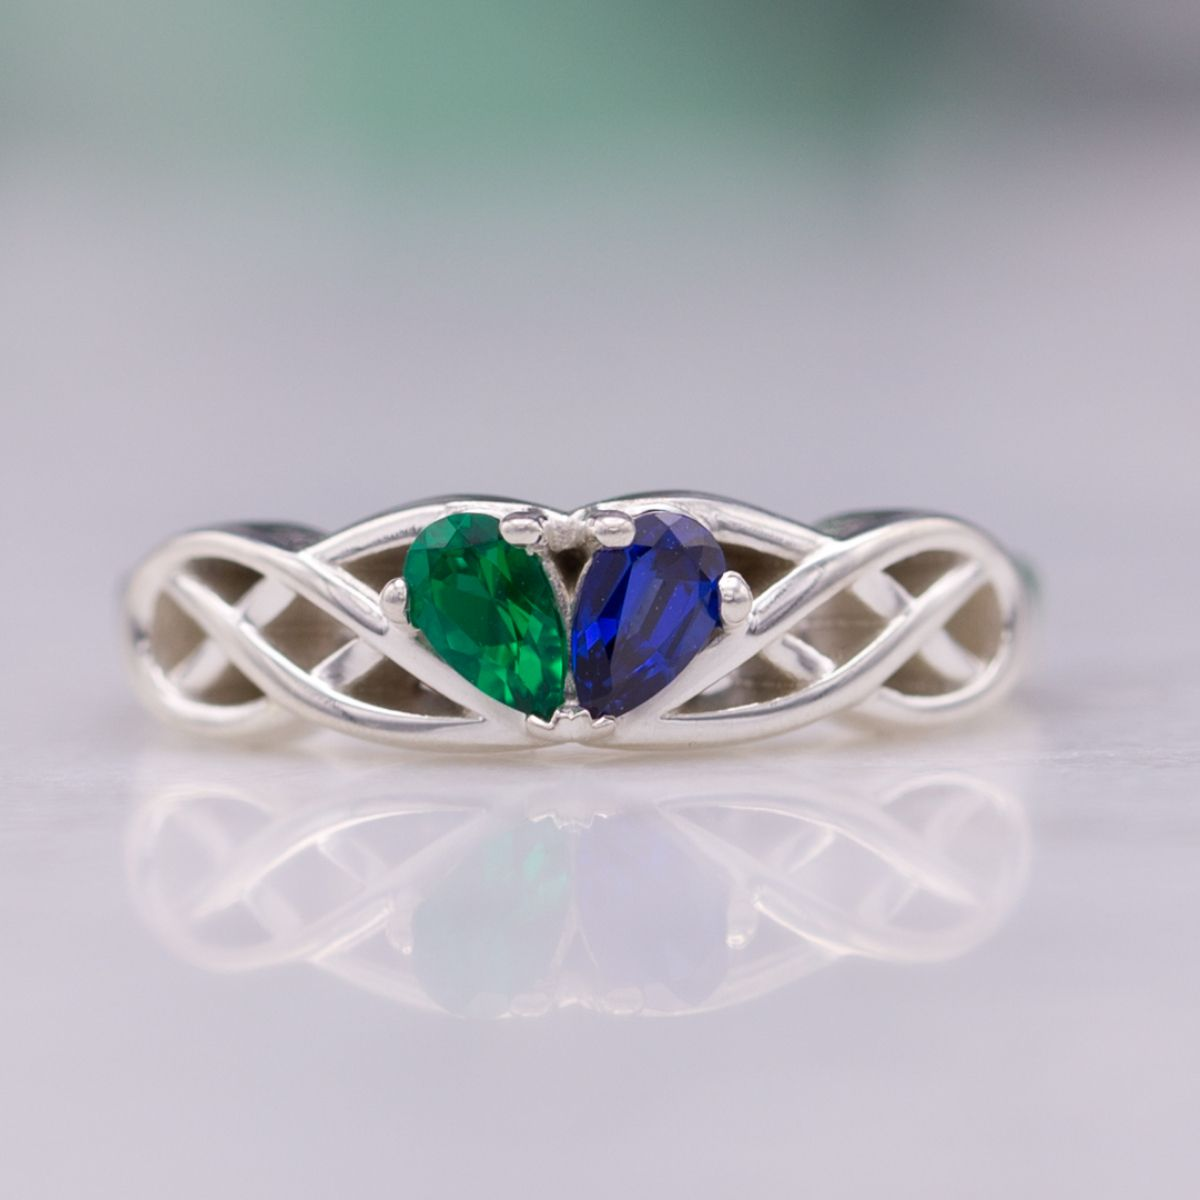 two-stone emerald and sapphire - engagement ring setting